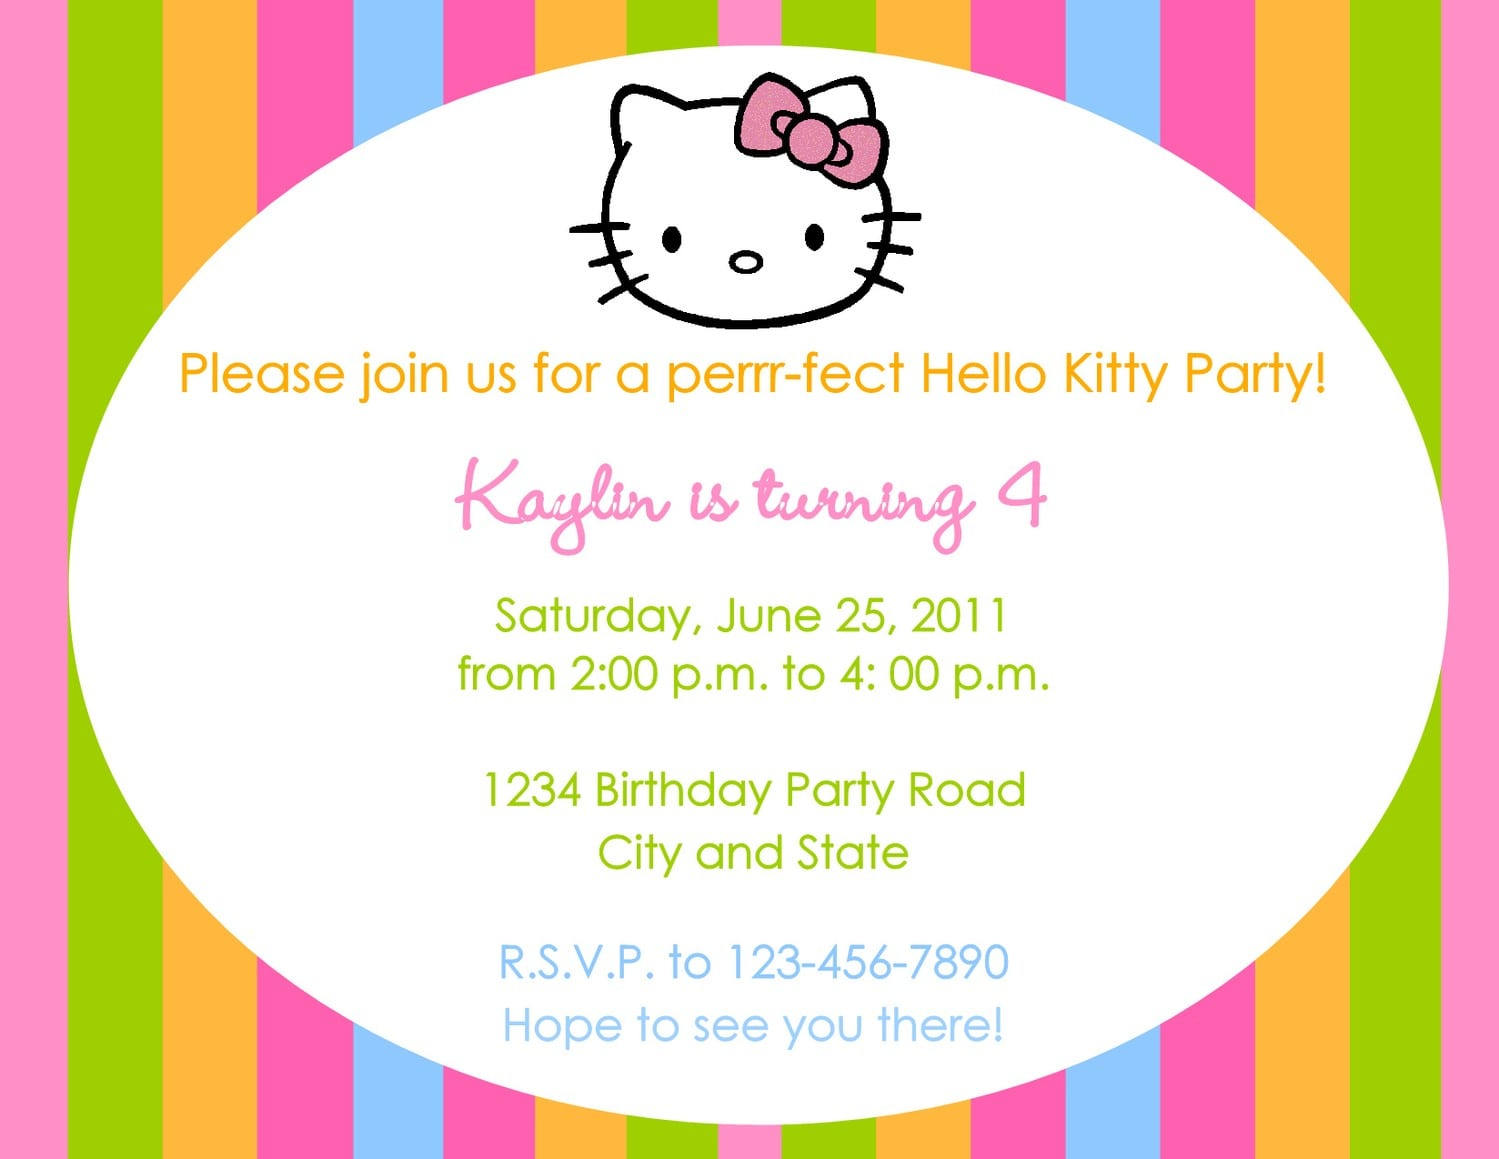 10 Year Old Birthday Invitation Wording Ideas - Karmashares LLC ...